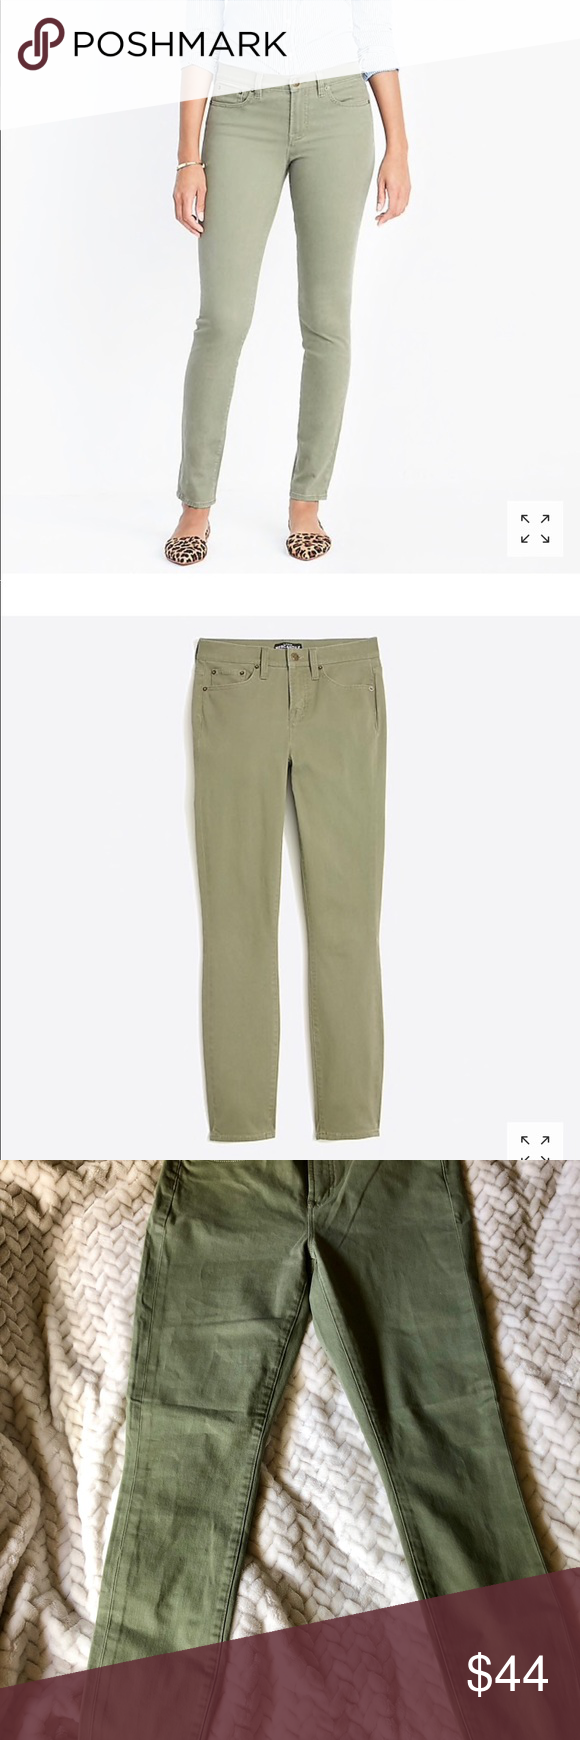 """04ded3427b JCrew Factory Cargo color 8"""" mid rise skinny pant NWT Cotton/rayon/elastane"""